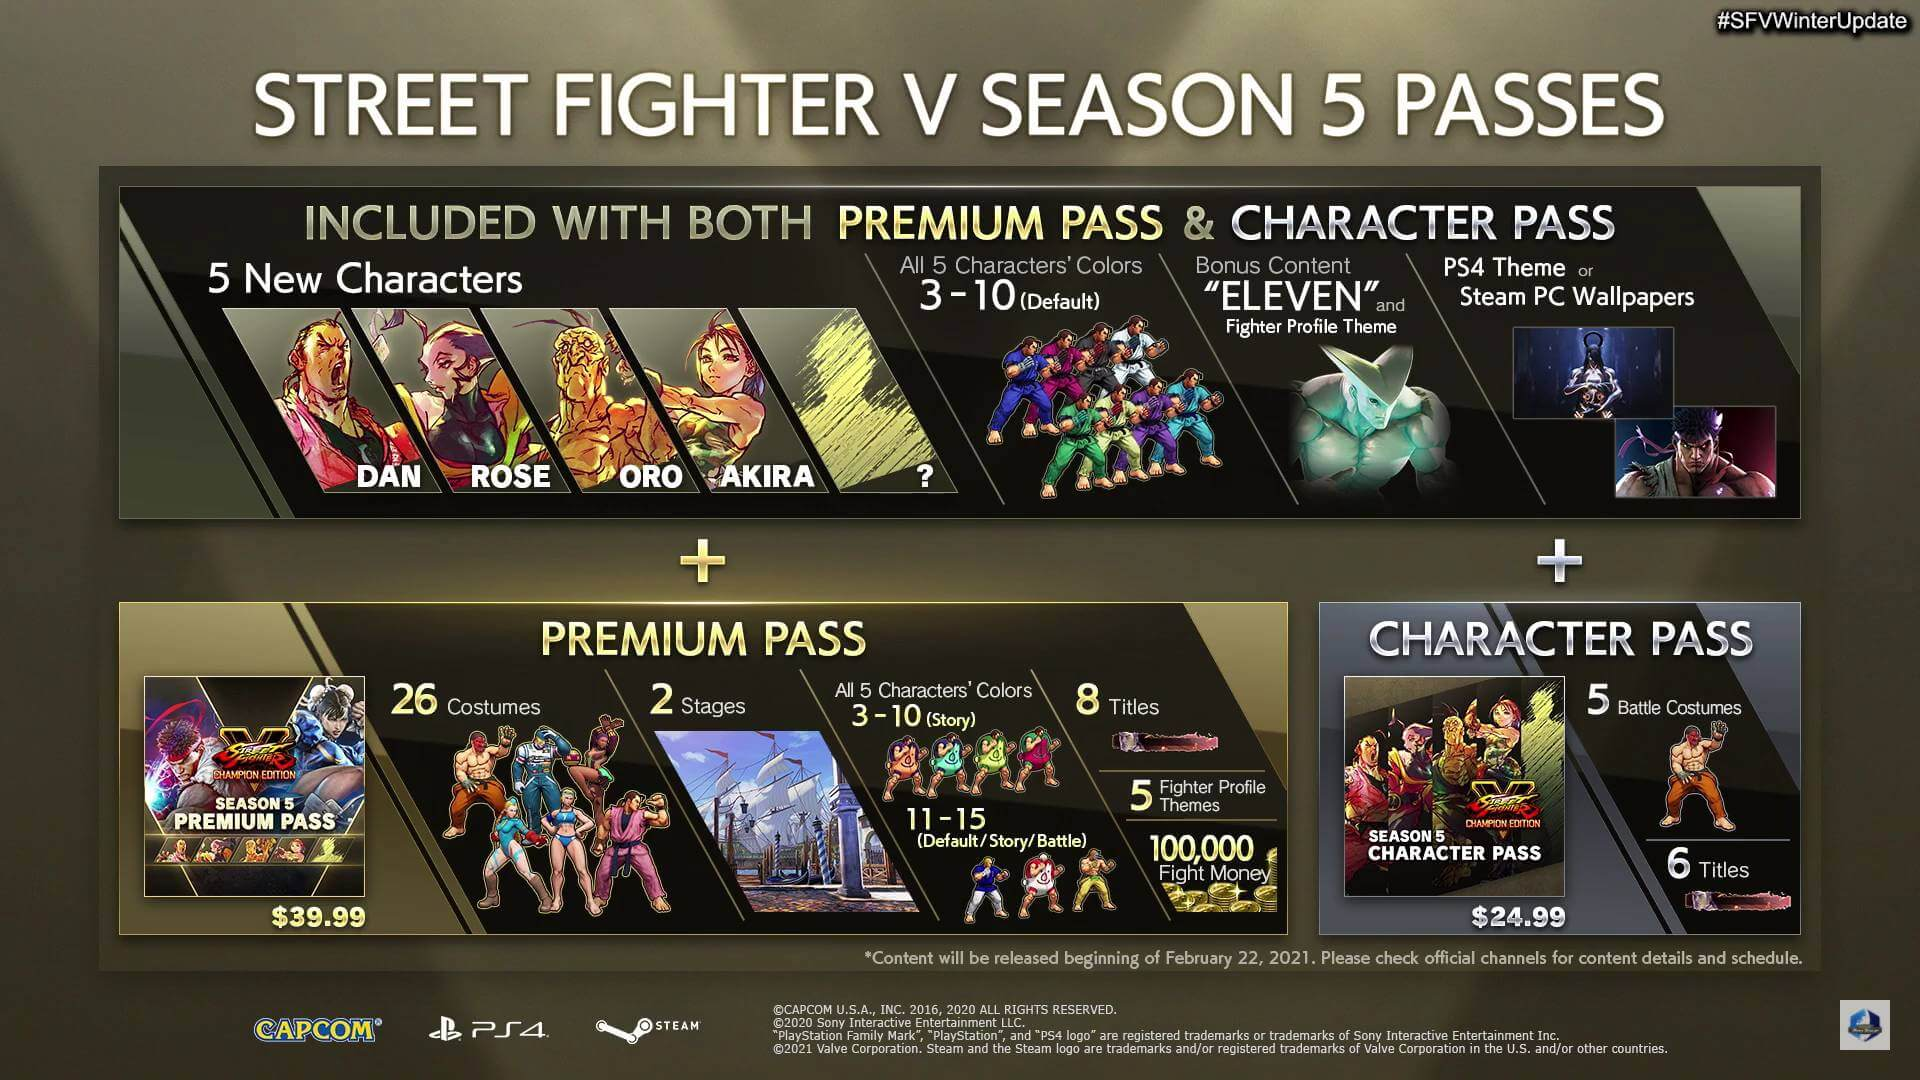 Street Fighter 5 Winter Update - Character Pass and Premium Pass explanation